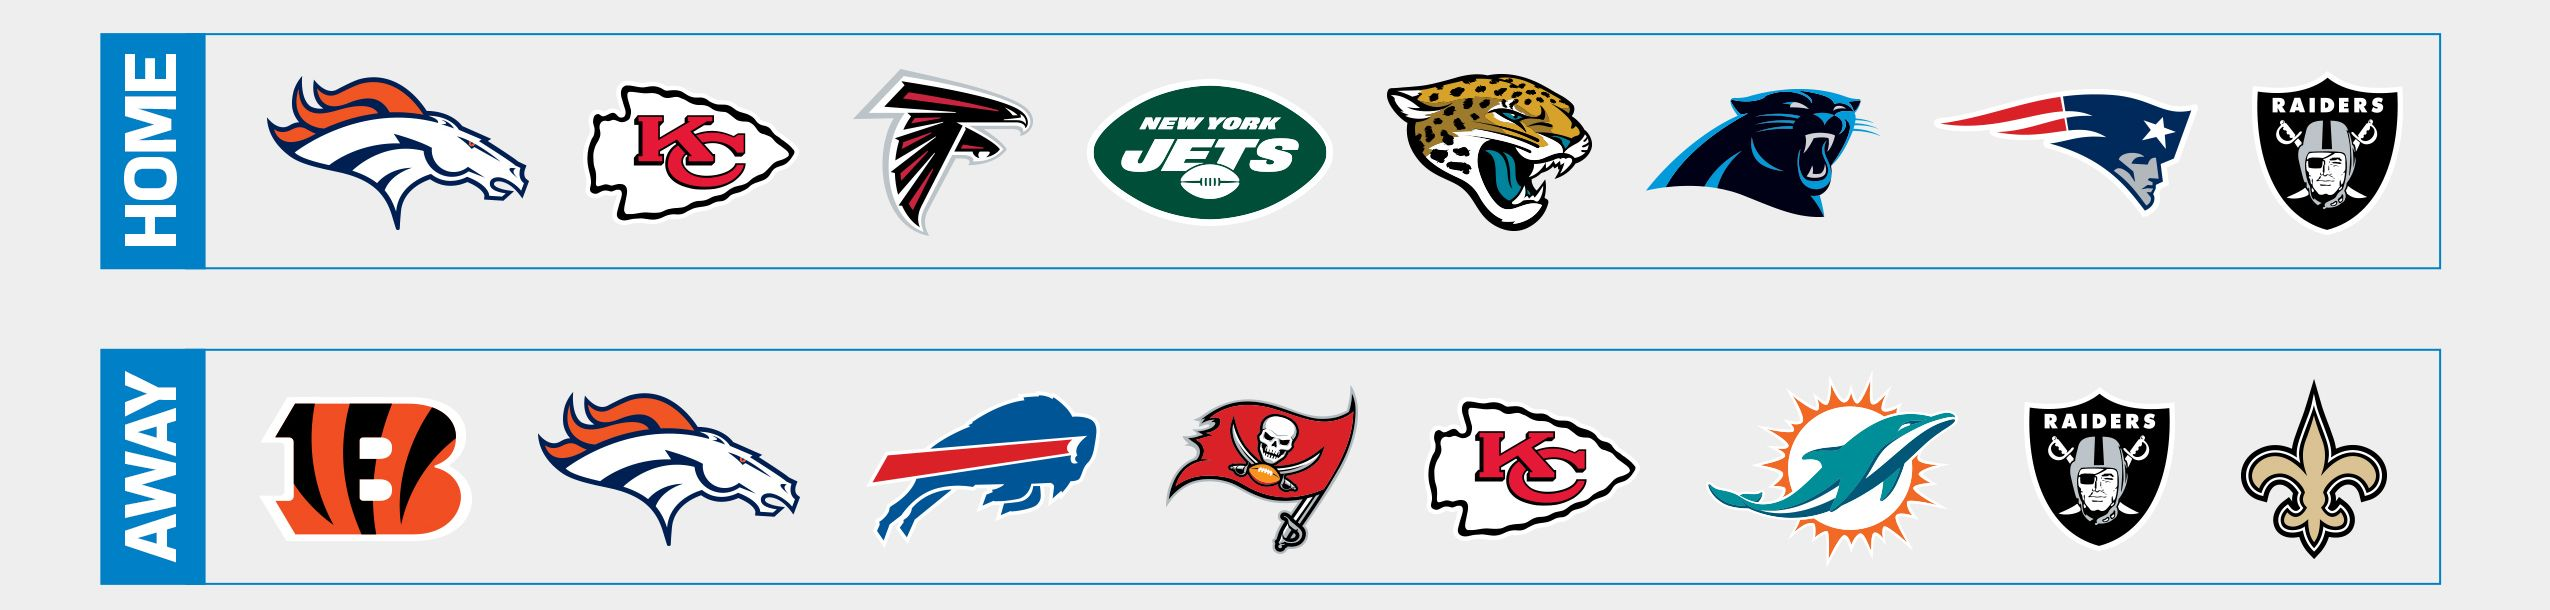 LAC_2020_Opponents_Schedule_Page